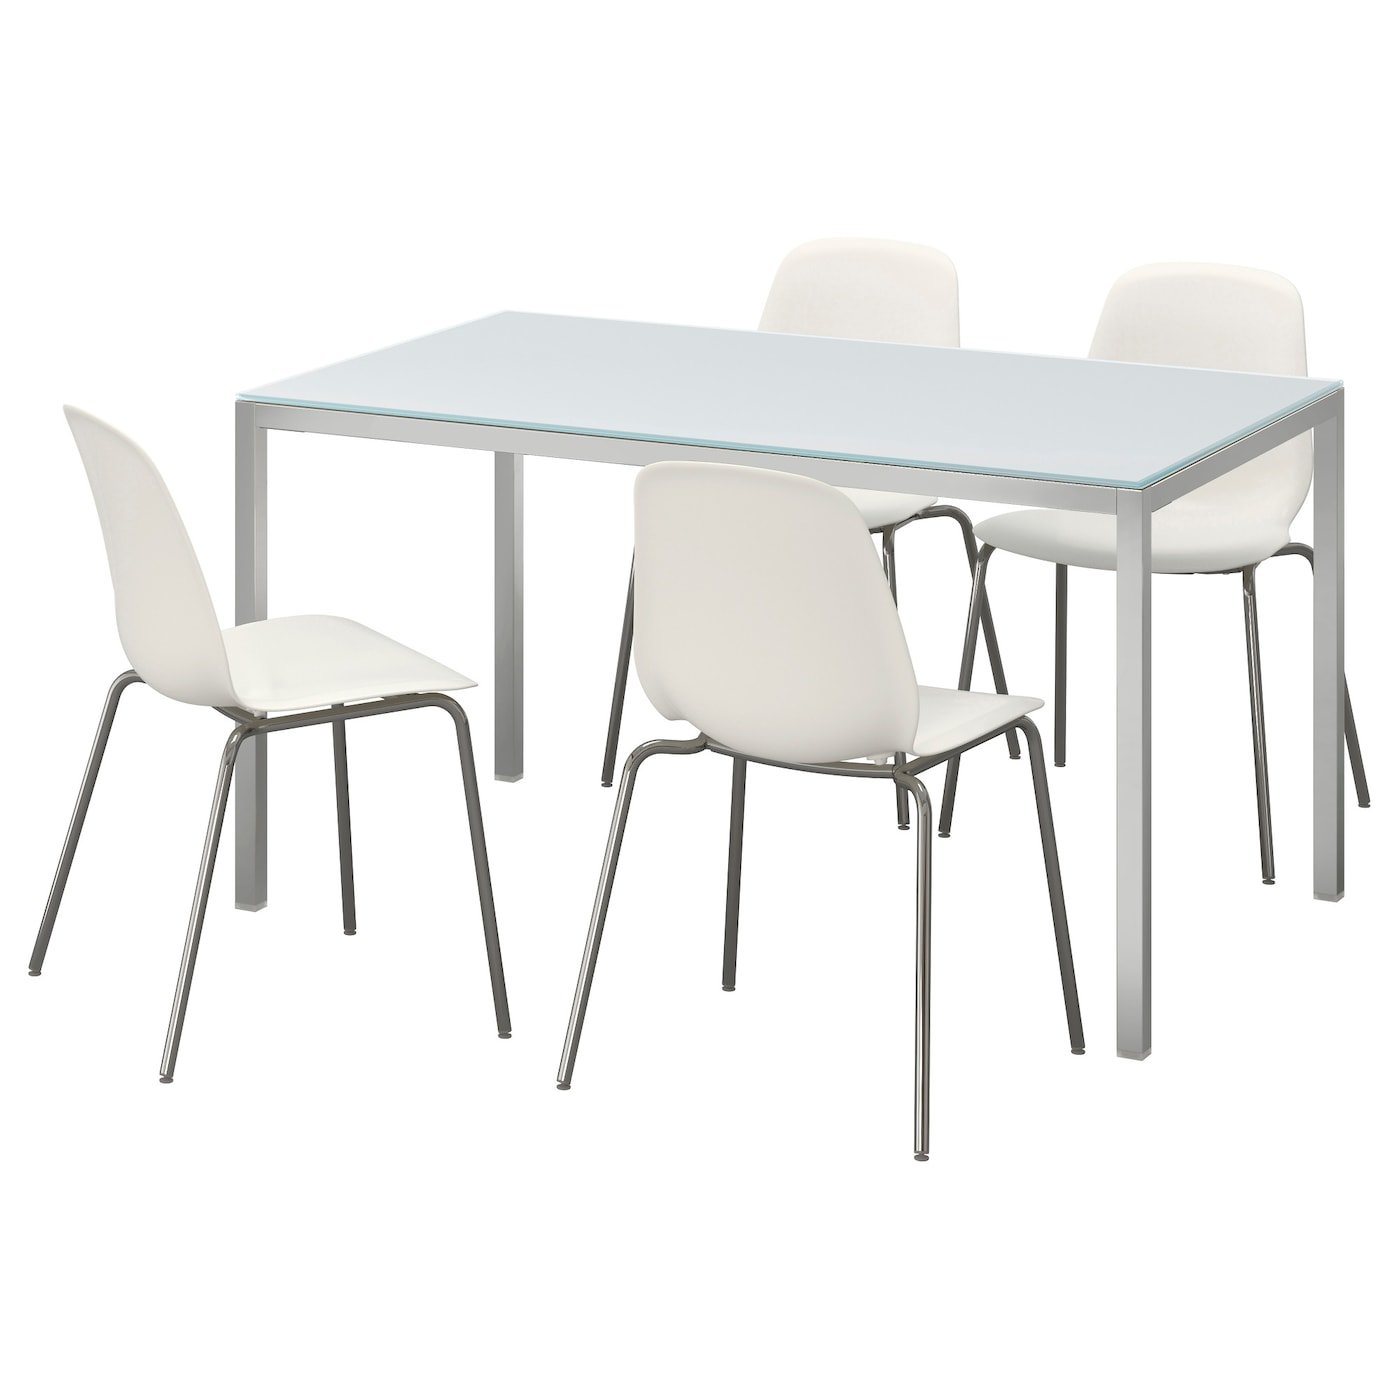 torsby leifarne table and 4 chairs glass white white 135 cm ikea. Black Bedroom Furniture Sets. Home Design Ideas